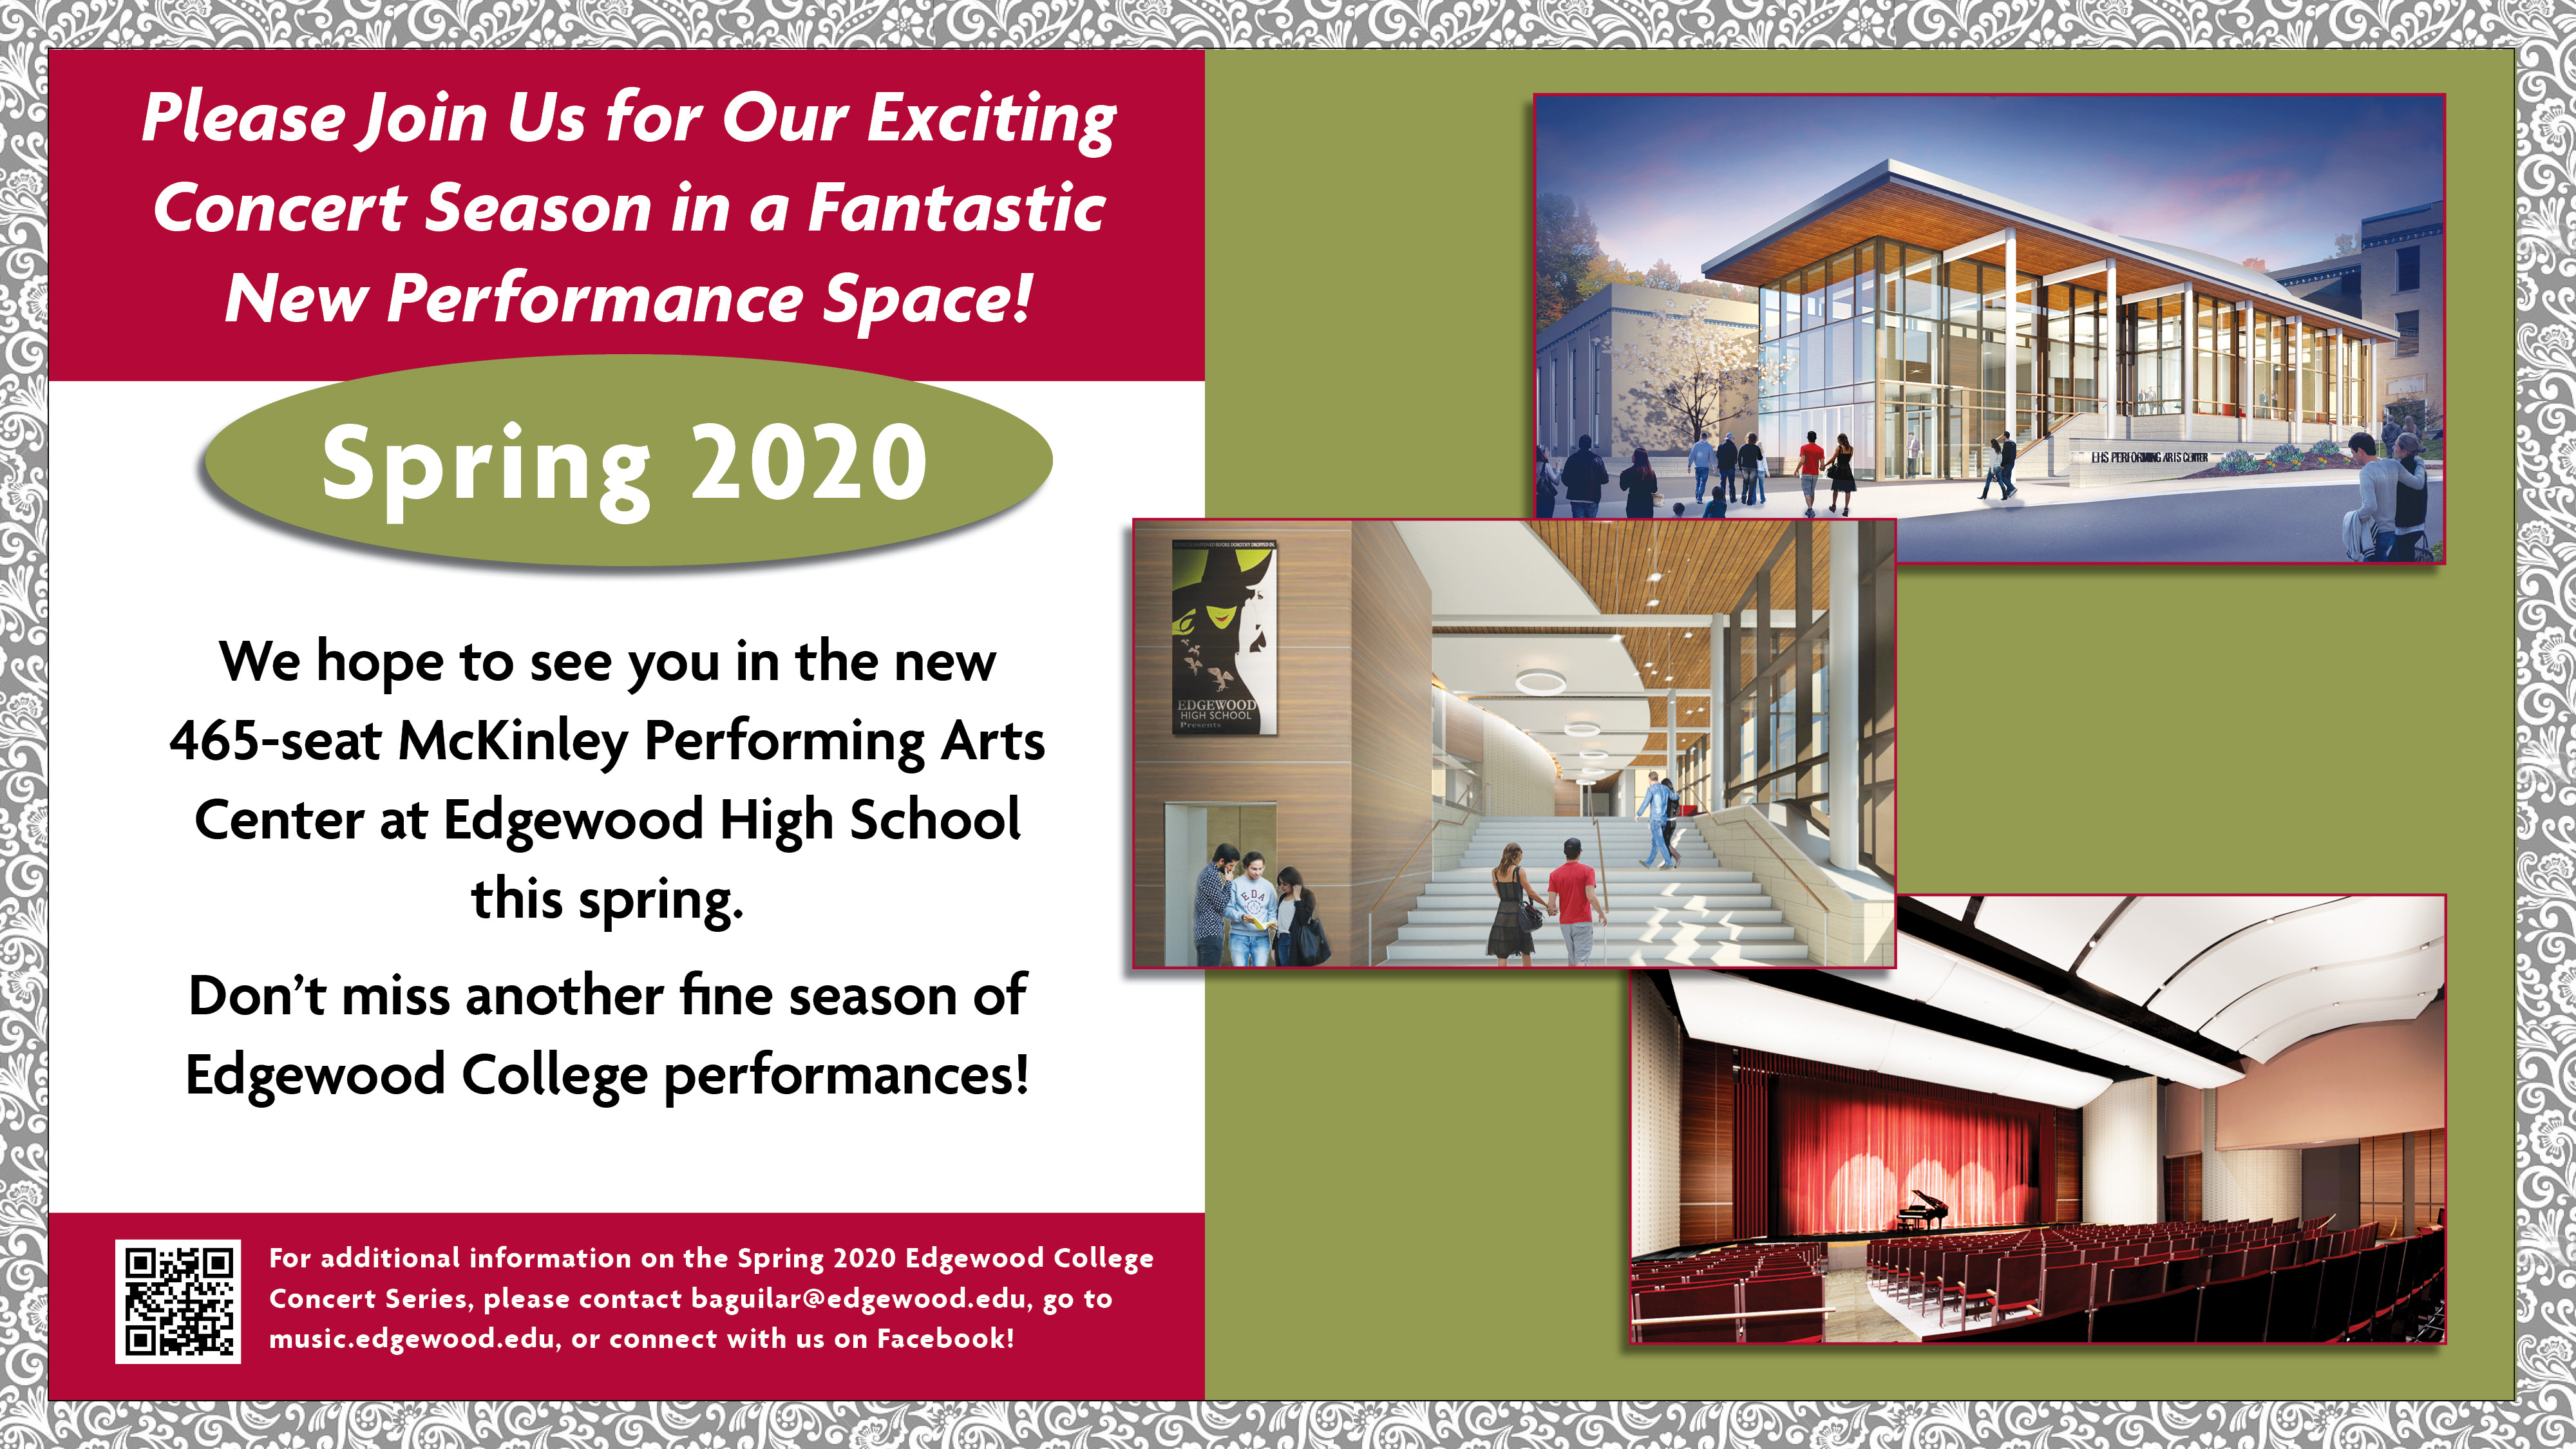 New Performing Arts Center for the Spring 2020 concert season